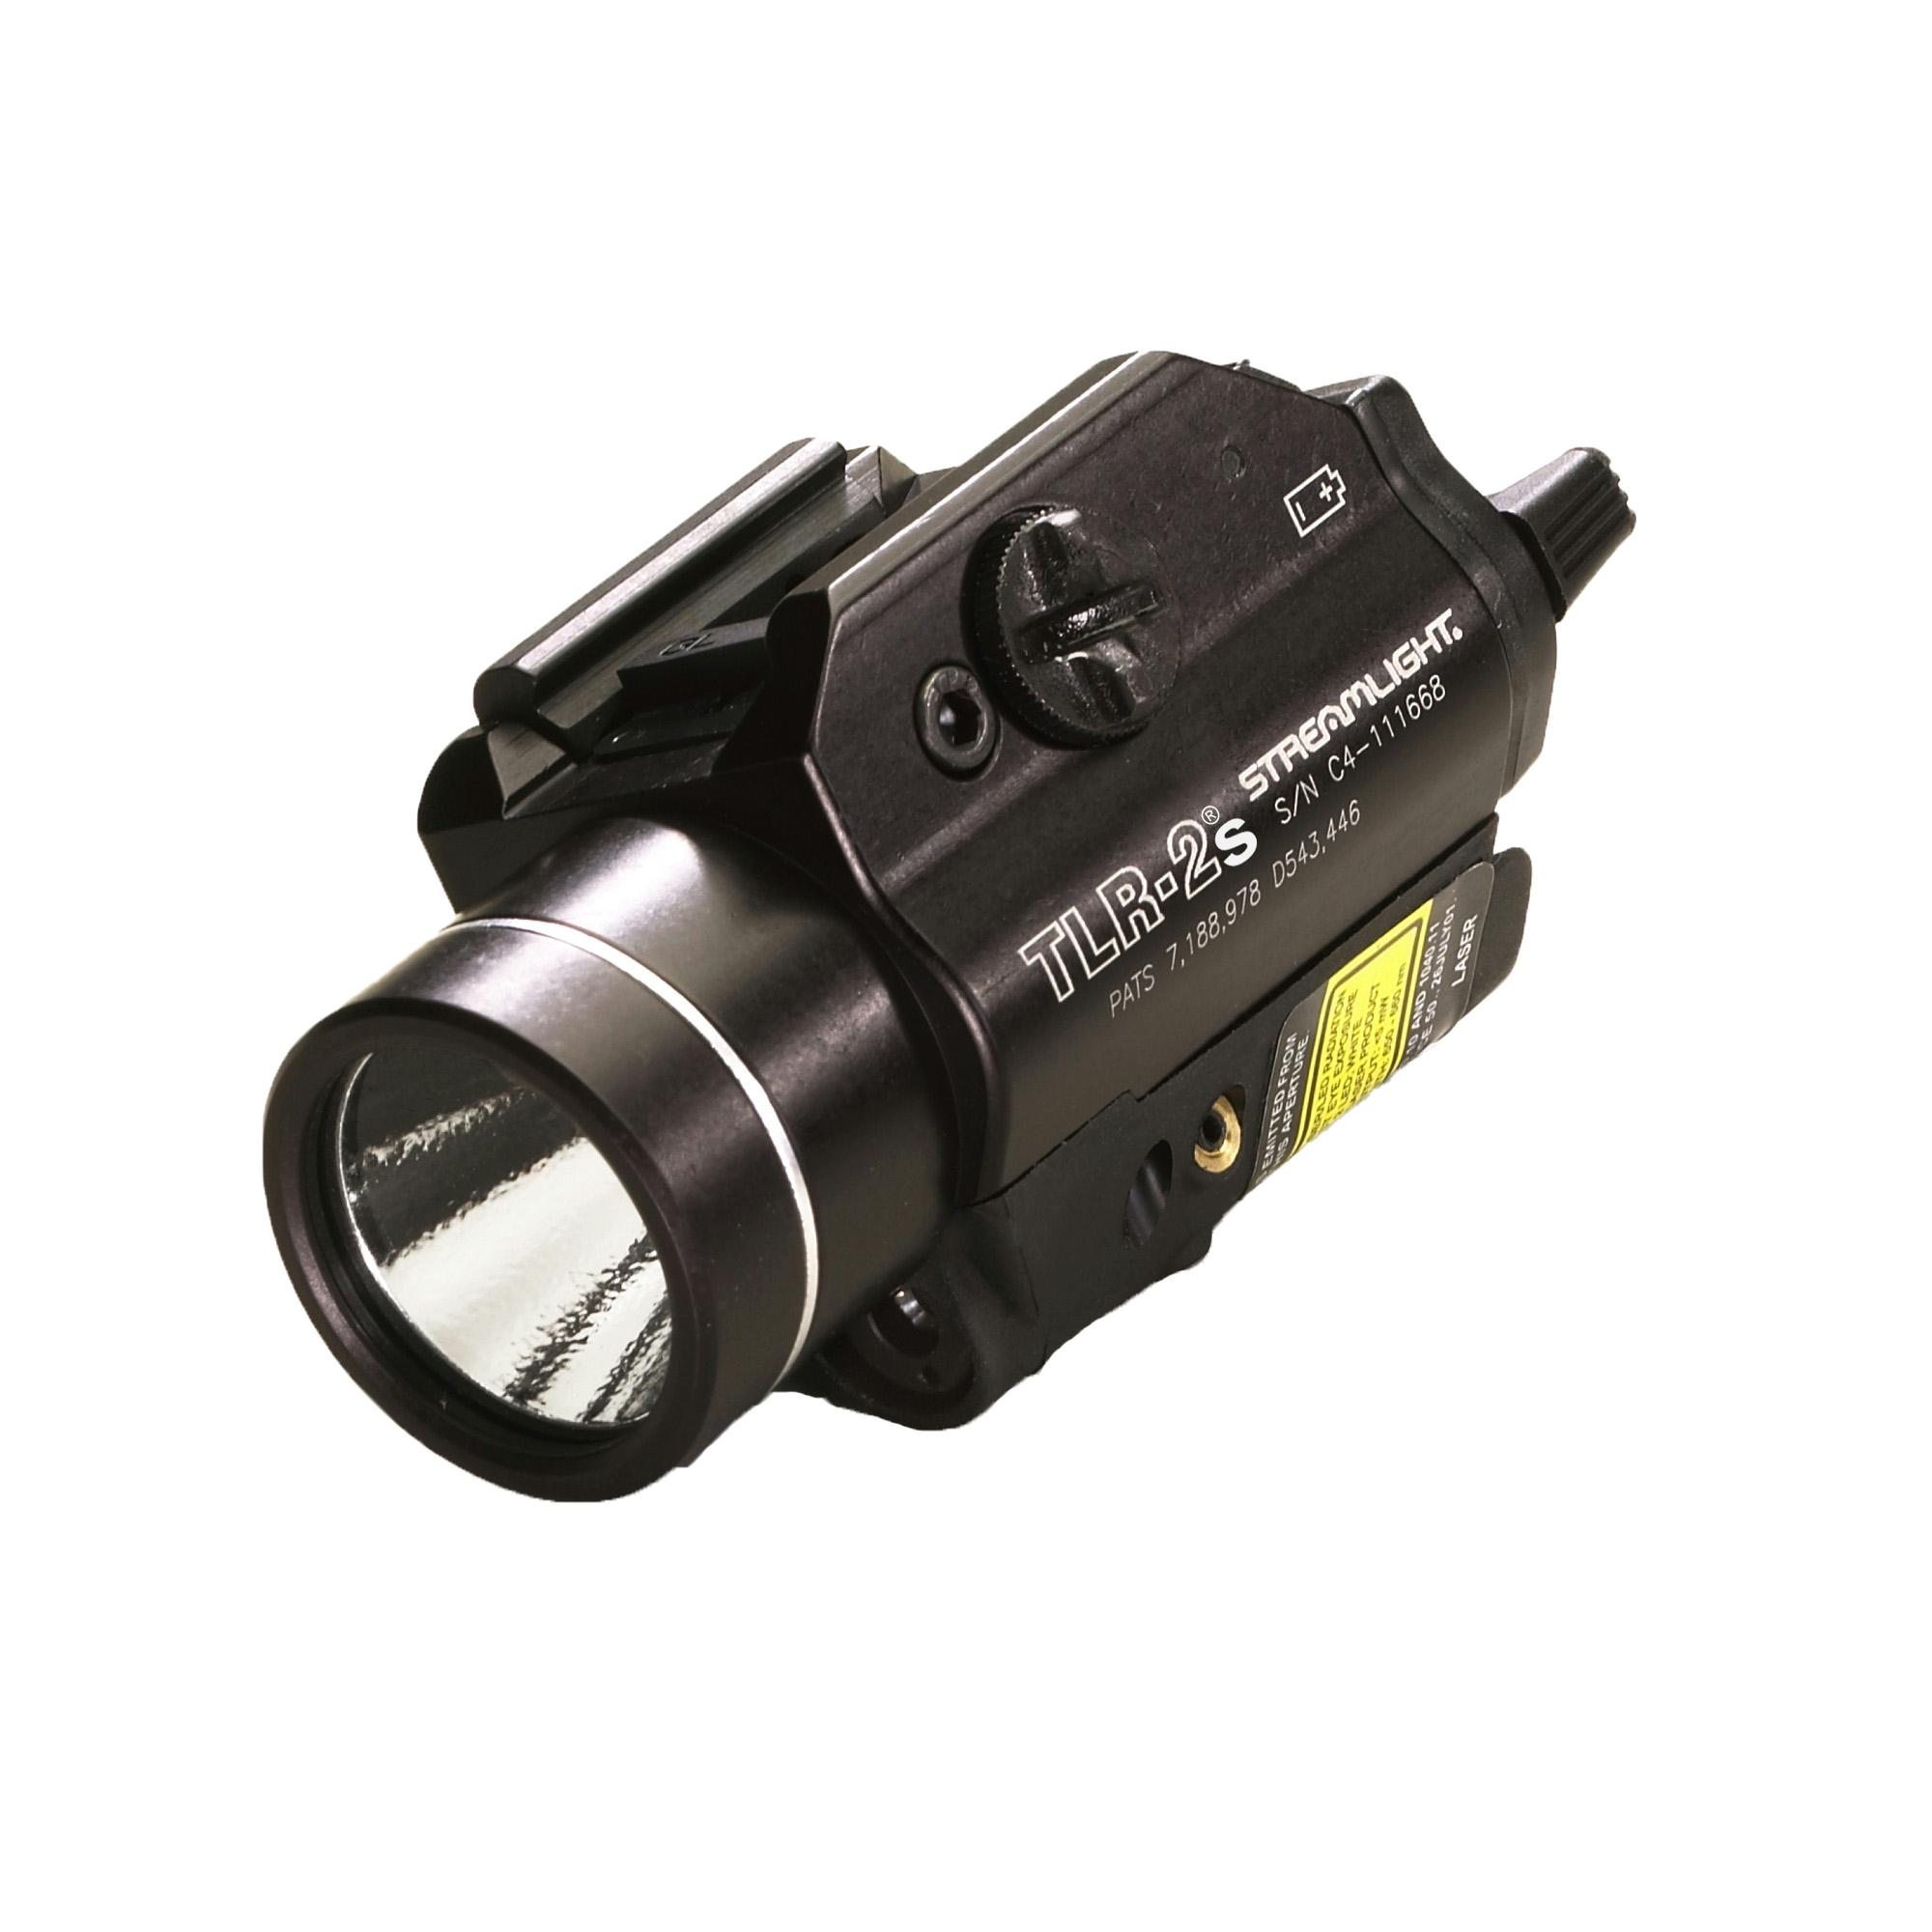 Streamlight TLR-2 Tactical Light w/ Strobe and Laser